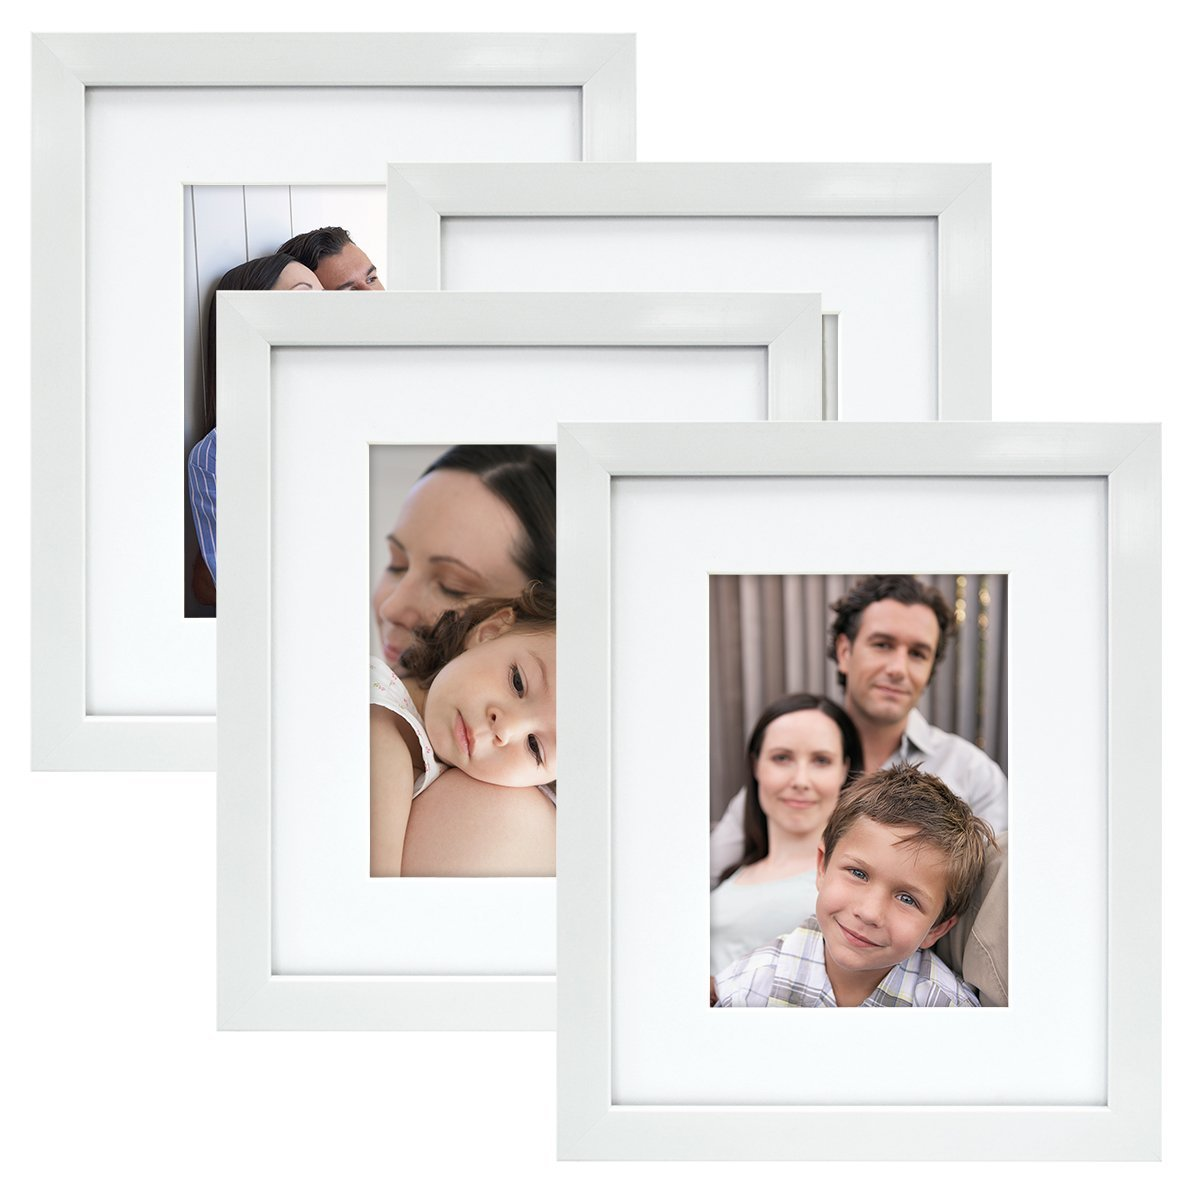 Cheap 8x7 Frame, find 8x7 Frame deals on line at Alibaba.com